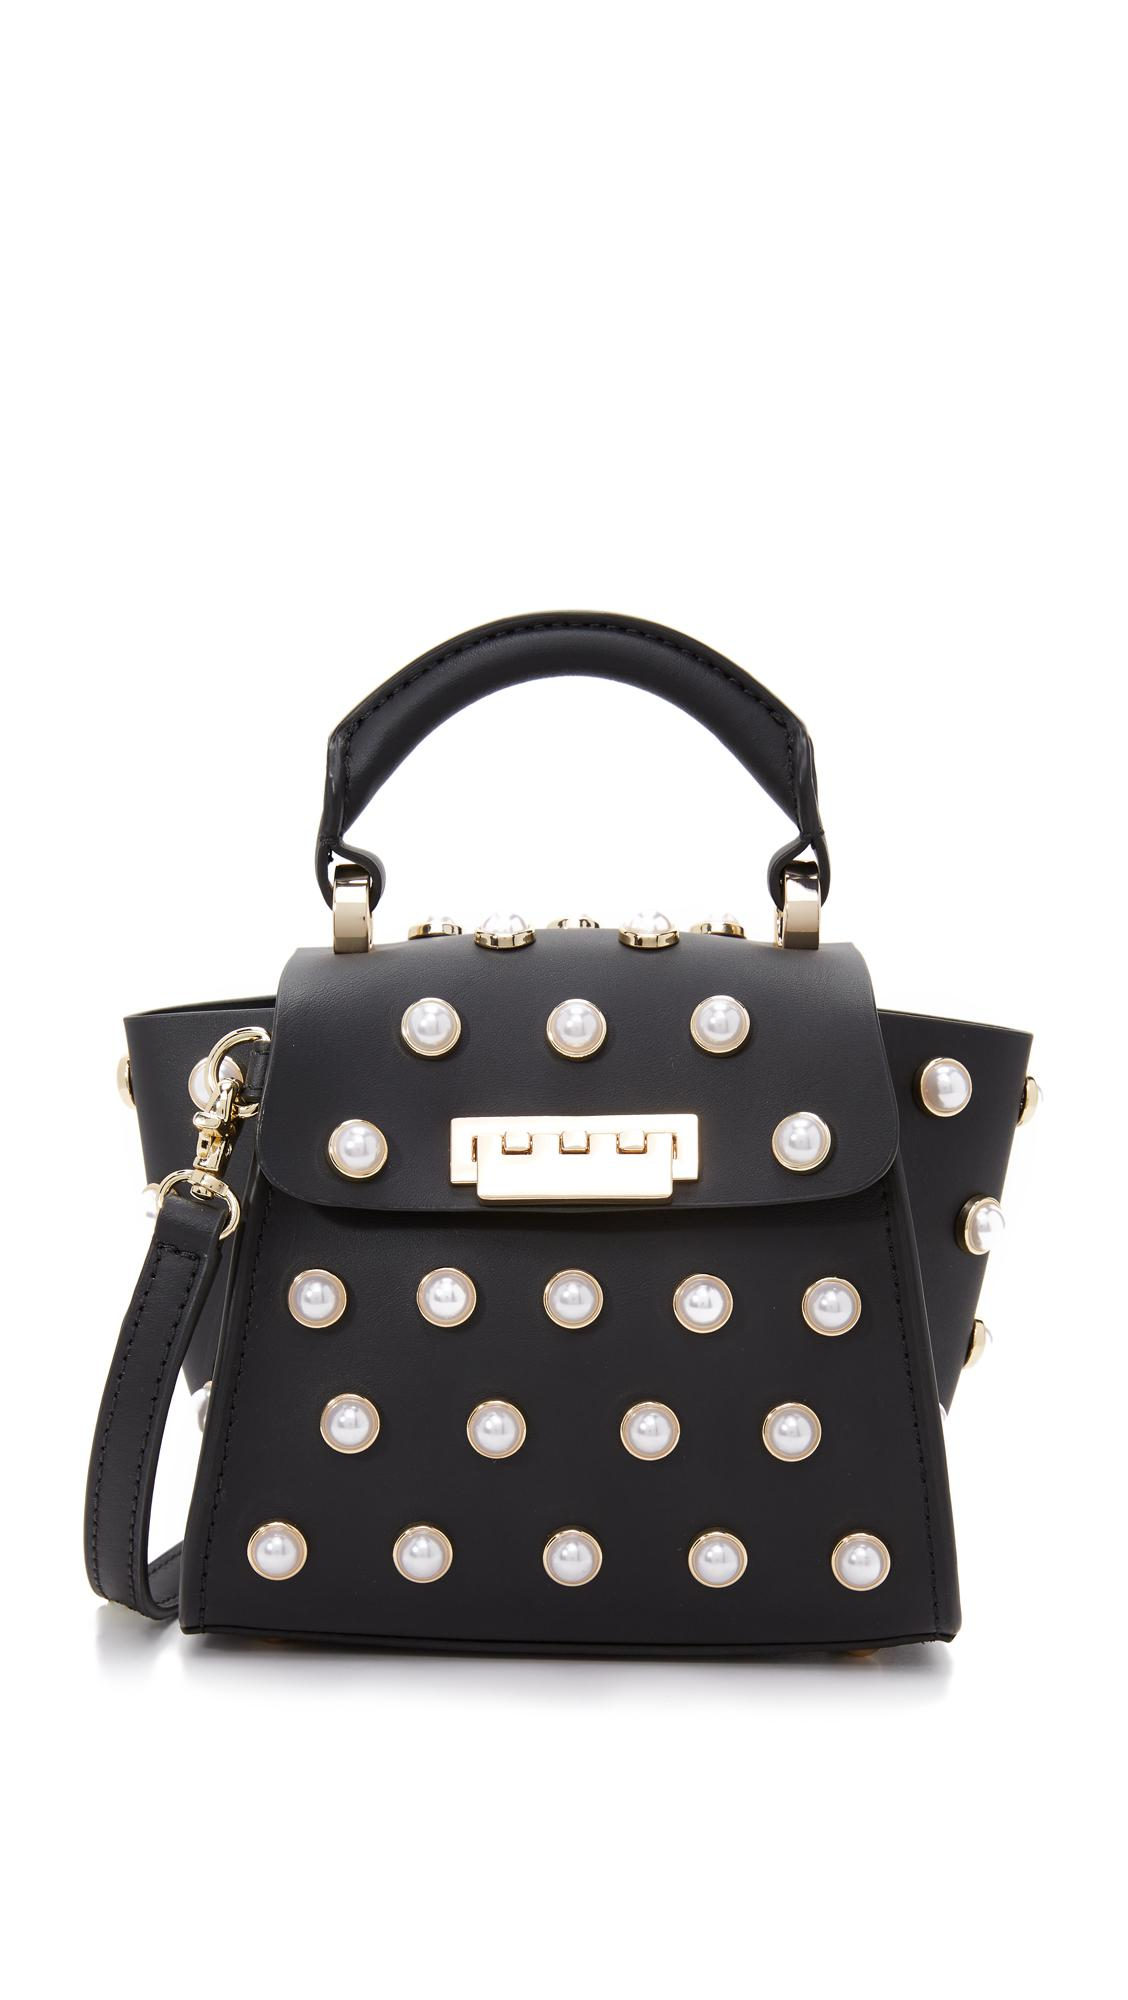 Zac Zac Posen Eartha Imitation Pearl Cross Body Bag In